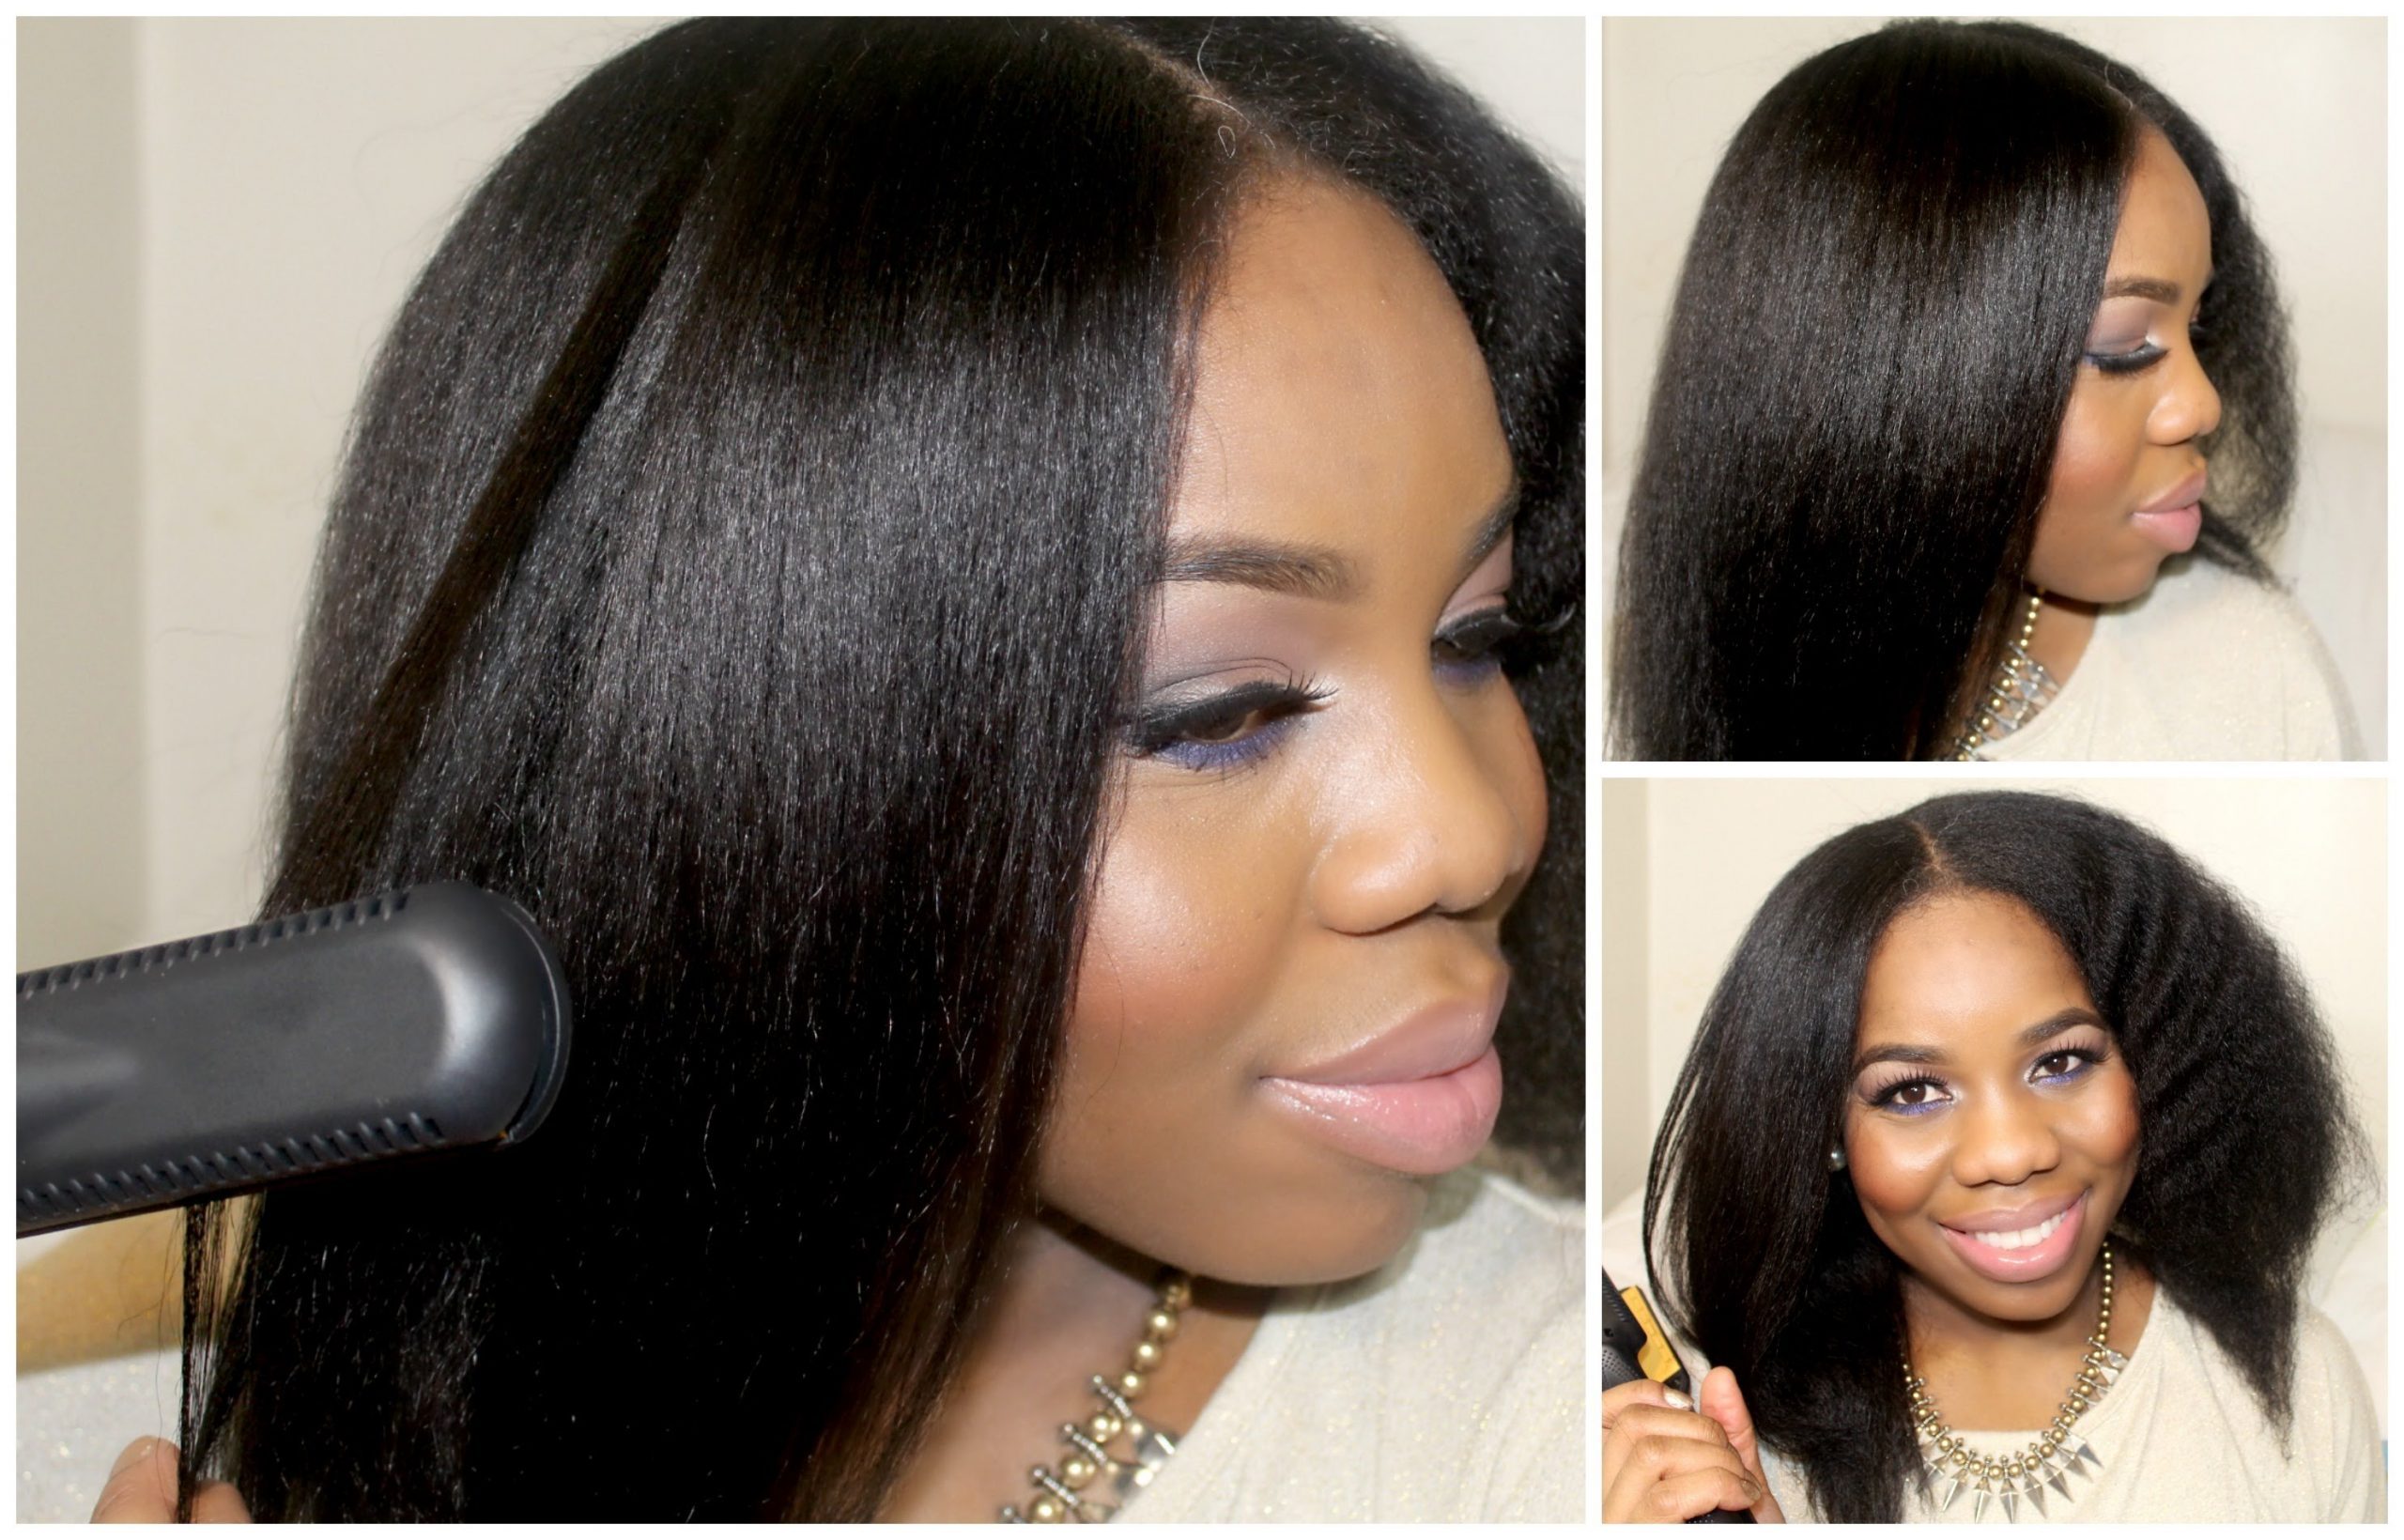 Stretching Hair By Blowing is Taking People to Hell By Zipporah Mushala